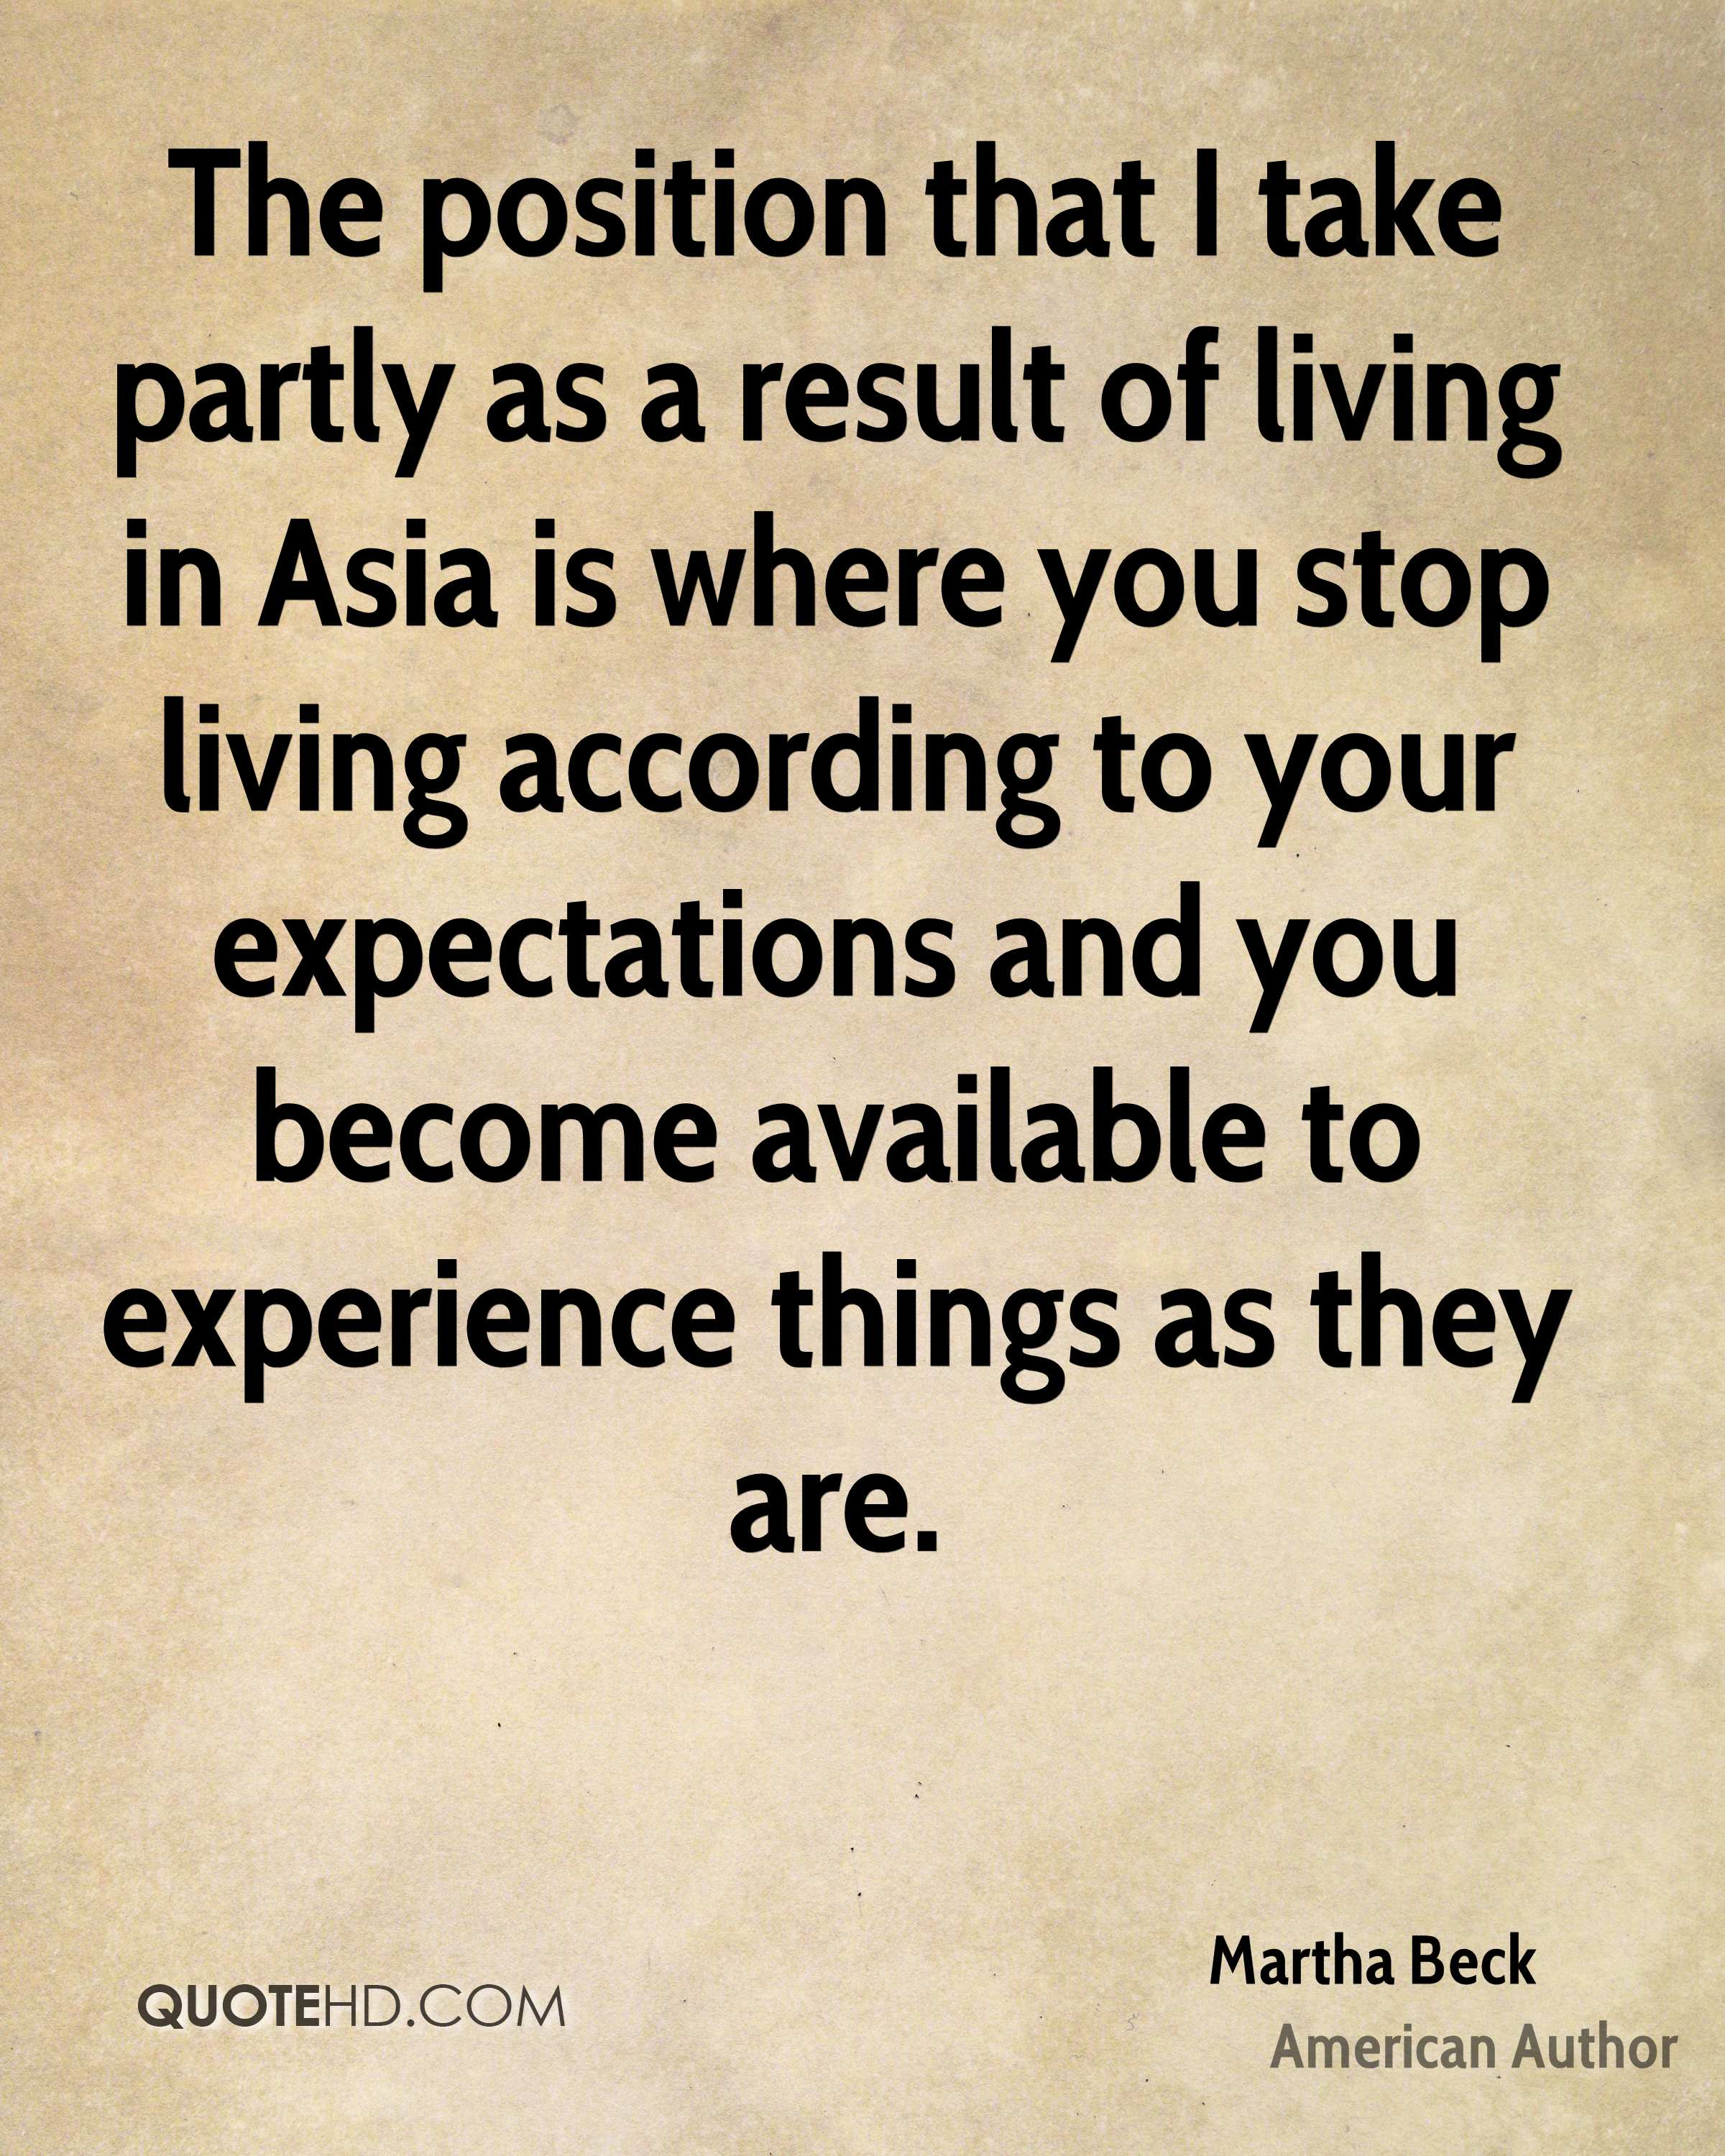 The position that I take partly as a result of living in Asia is where you stop living according to your expectations and you become available to experience things as they are.